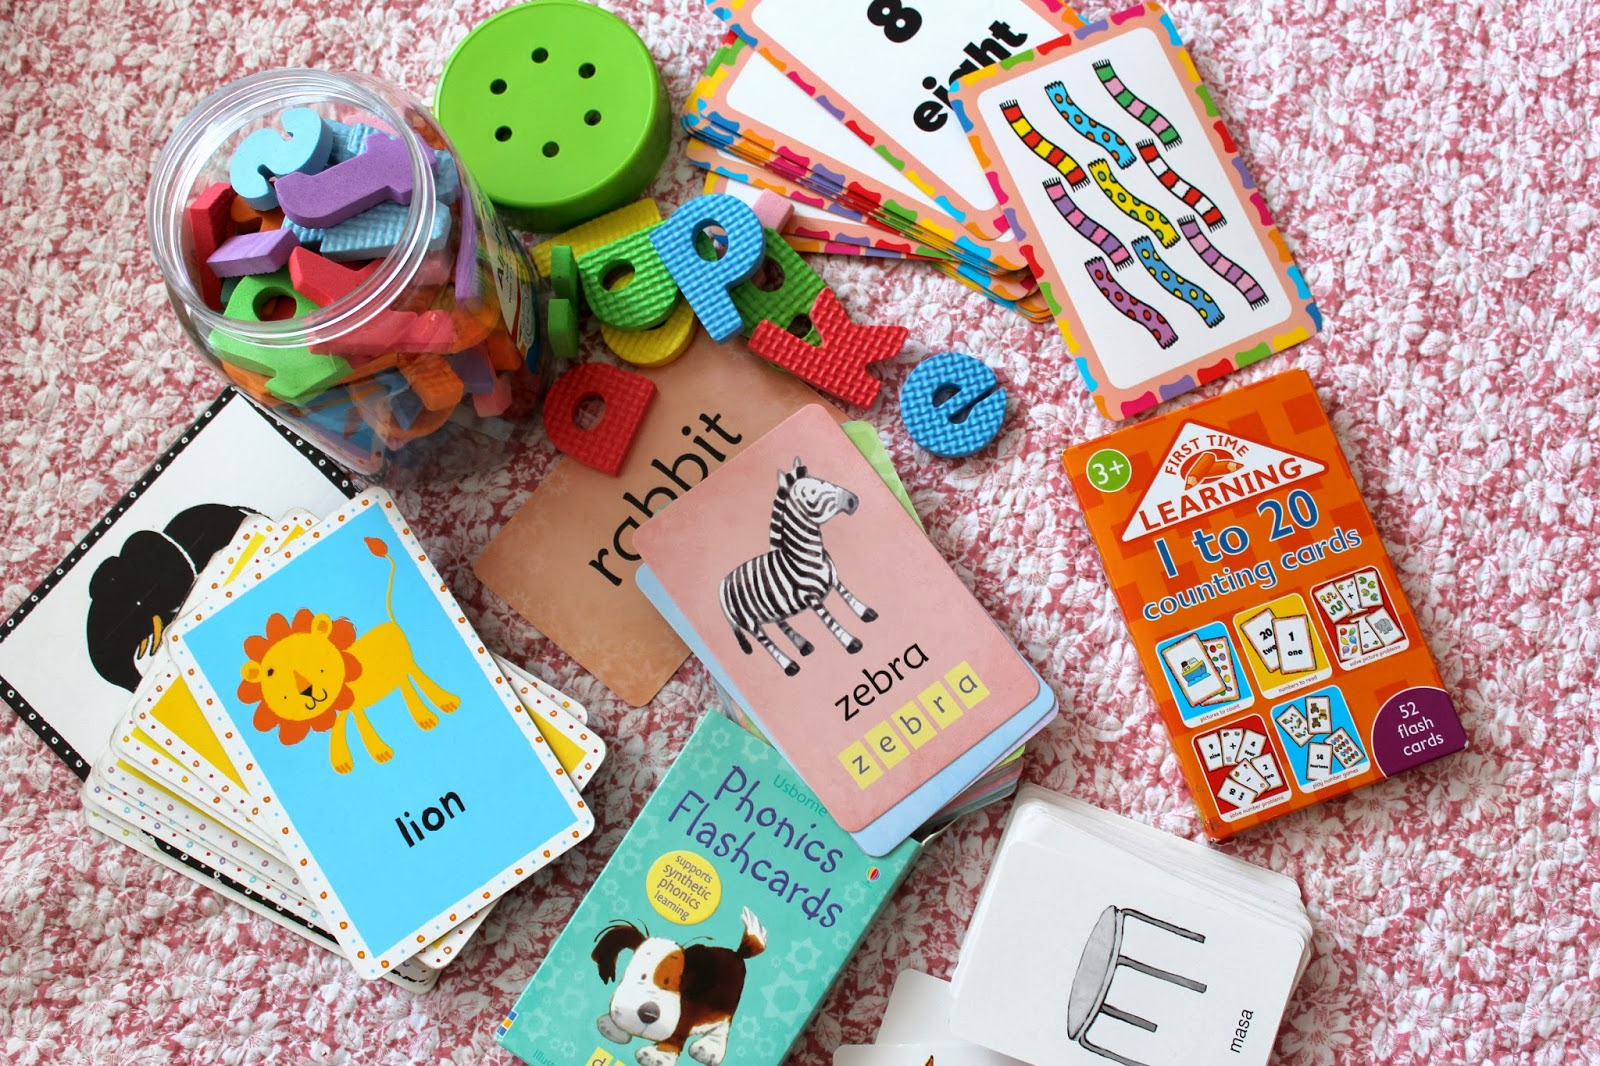 Ze zen inspiration coloring book - Flashcards From Amazon No Longer Listed Counting Cards For 99p From A Bookshop Foam Letters 3 From Sainsburys Download Image Ze Zen Colouring Book